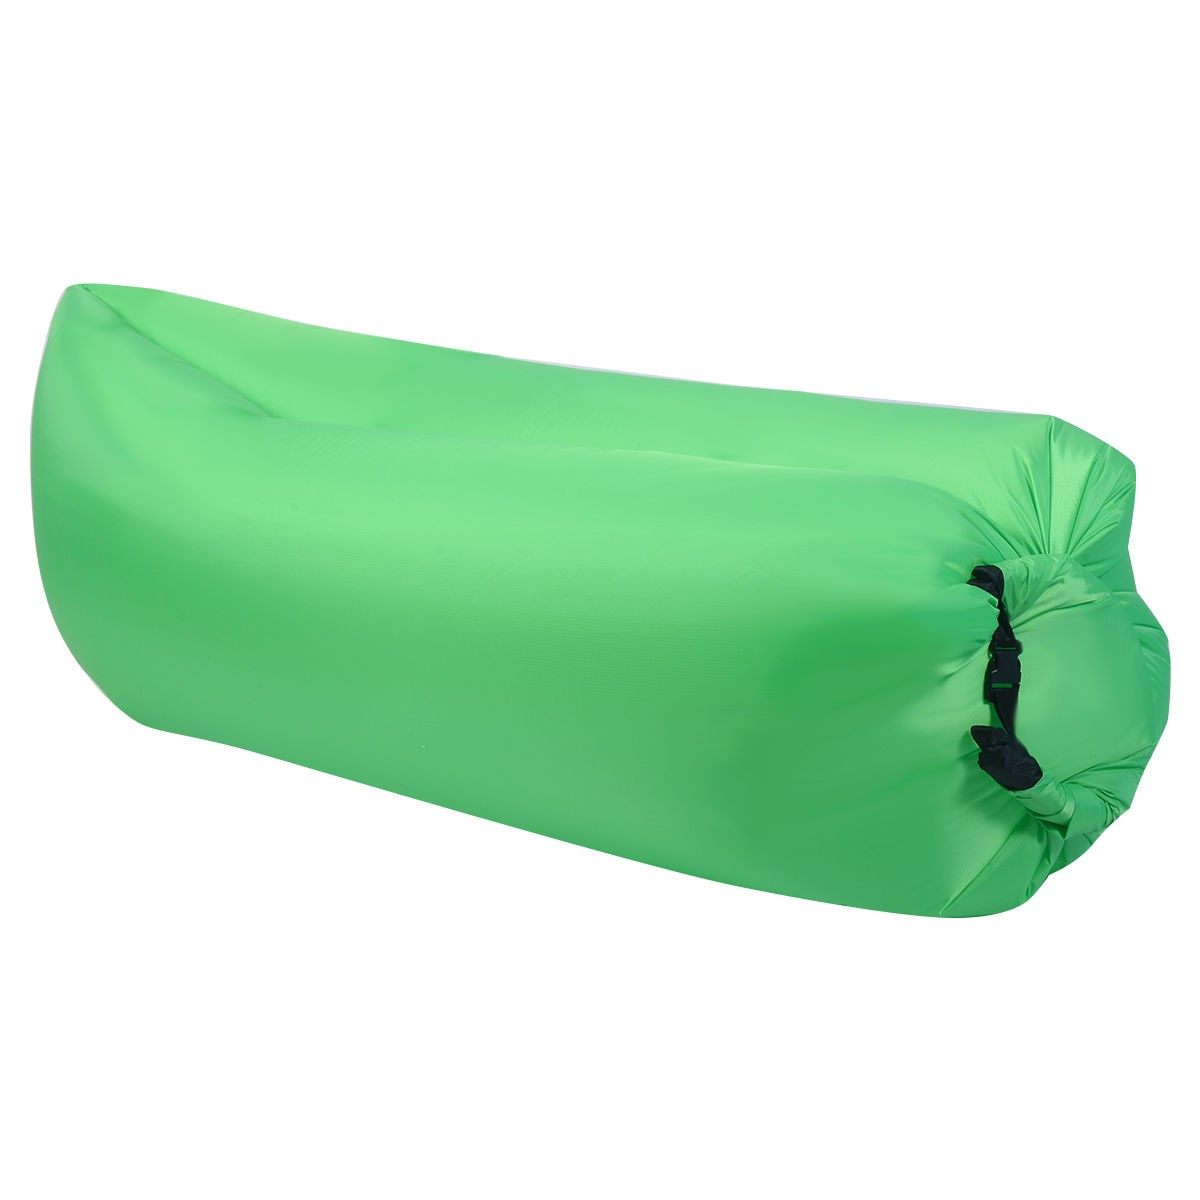 inflatable outdoor sofa chair manicurist or stool meaning lazy couch air sleeping lounger